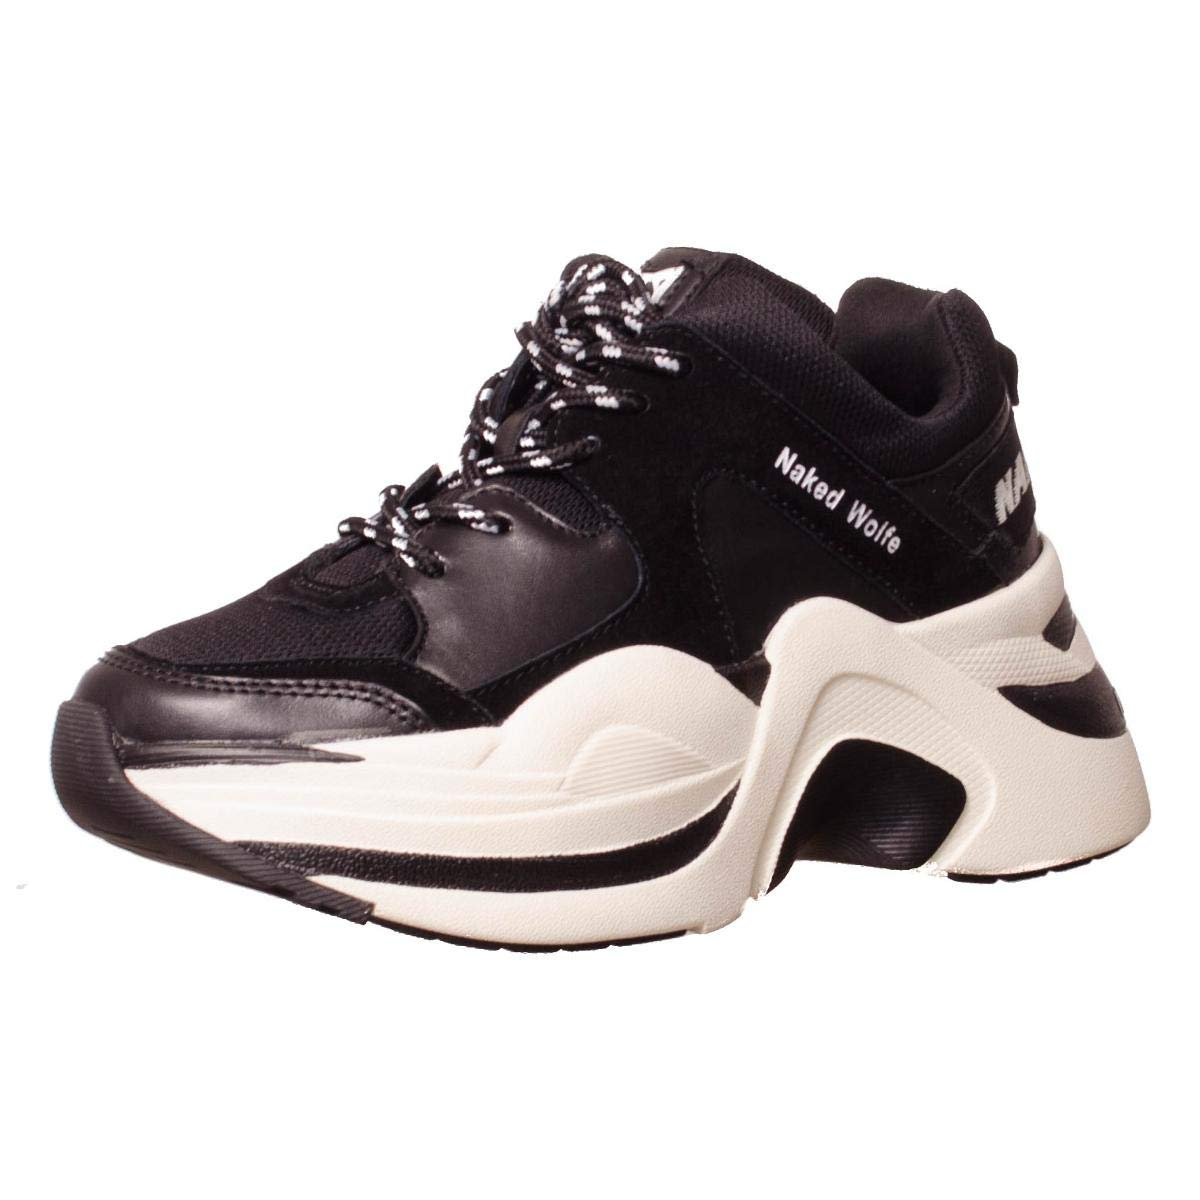 Blackoff Chaussures Naked Plates Wolfe Plateforme Femme White Track SMpqzUV